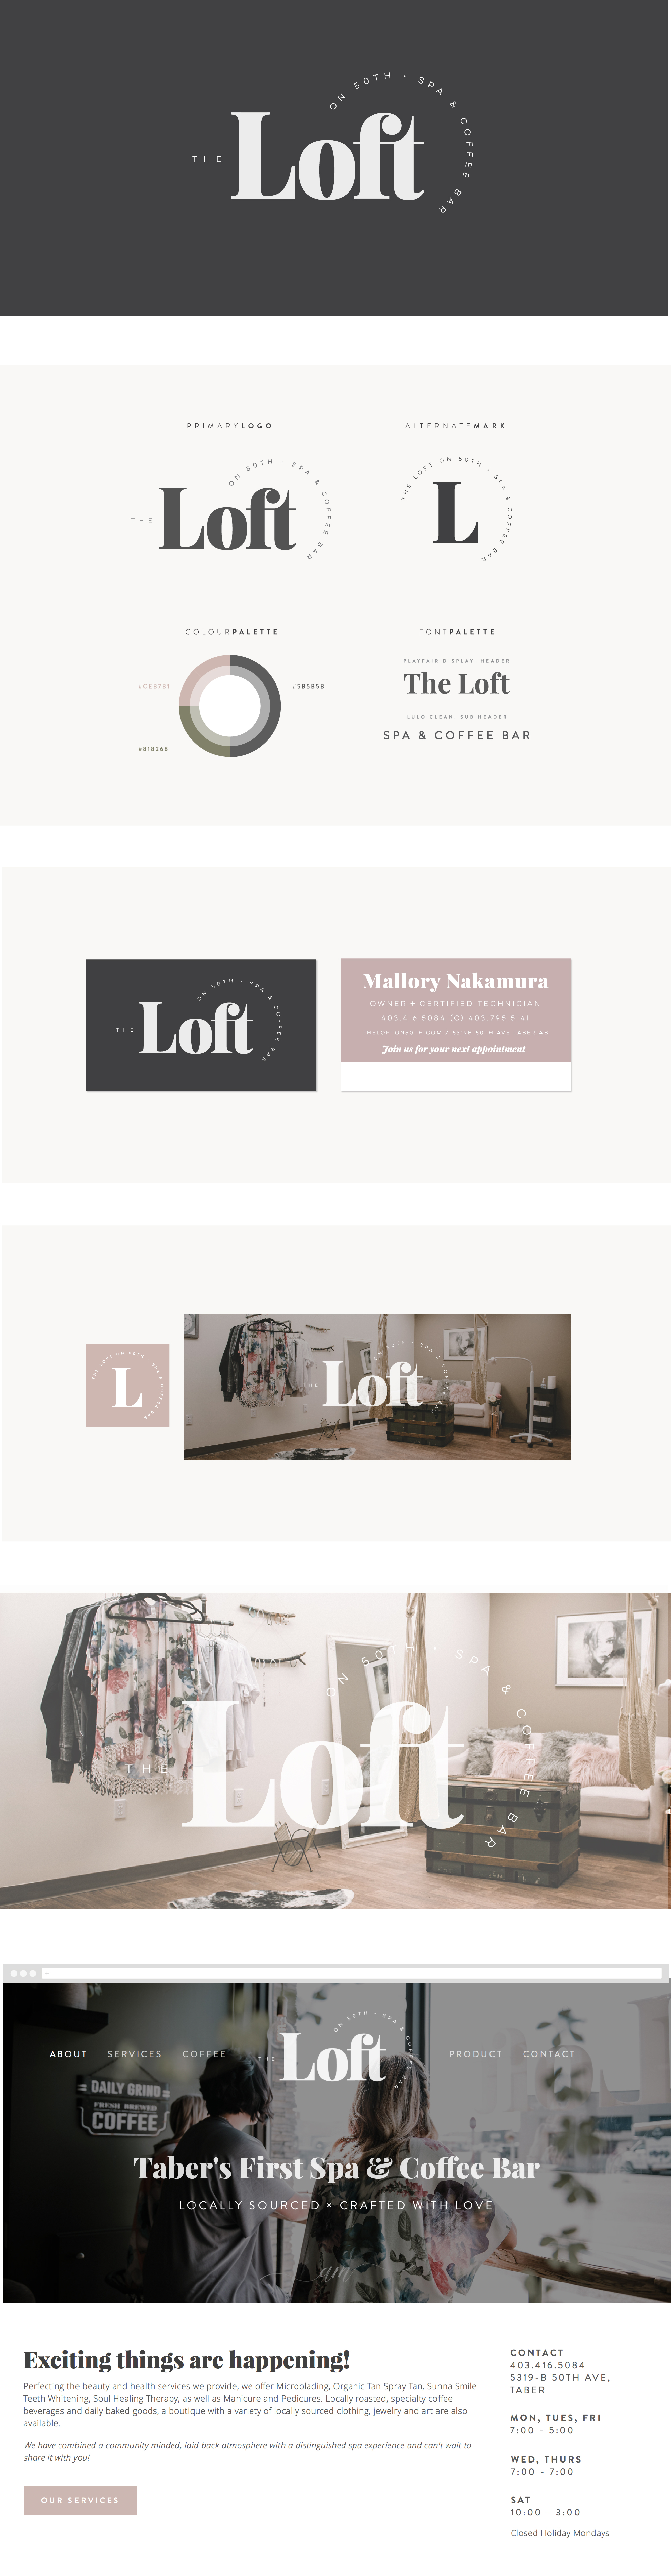 brand & web design for the loft on 50th spa & specialty coffee bar